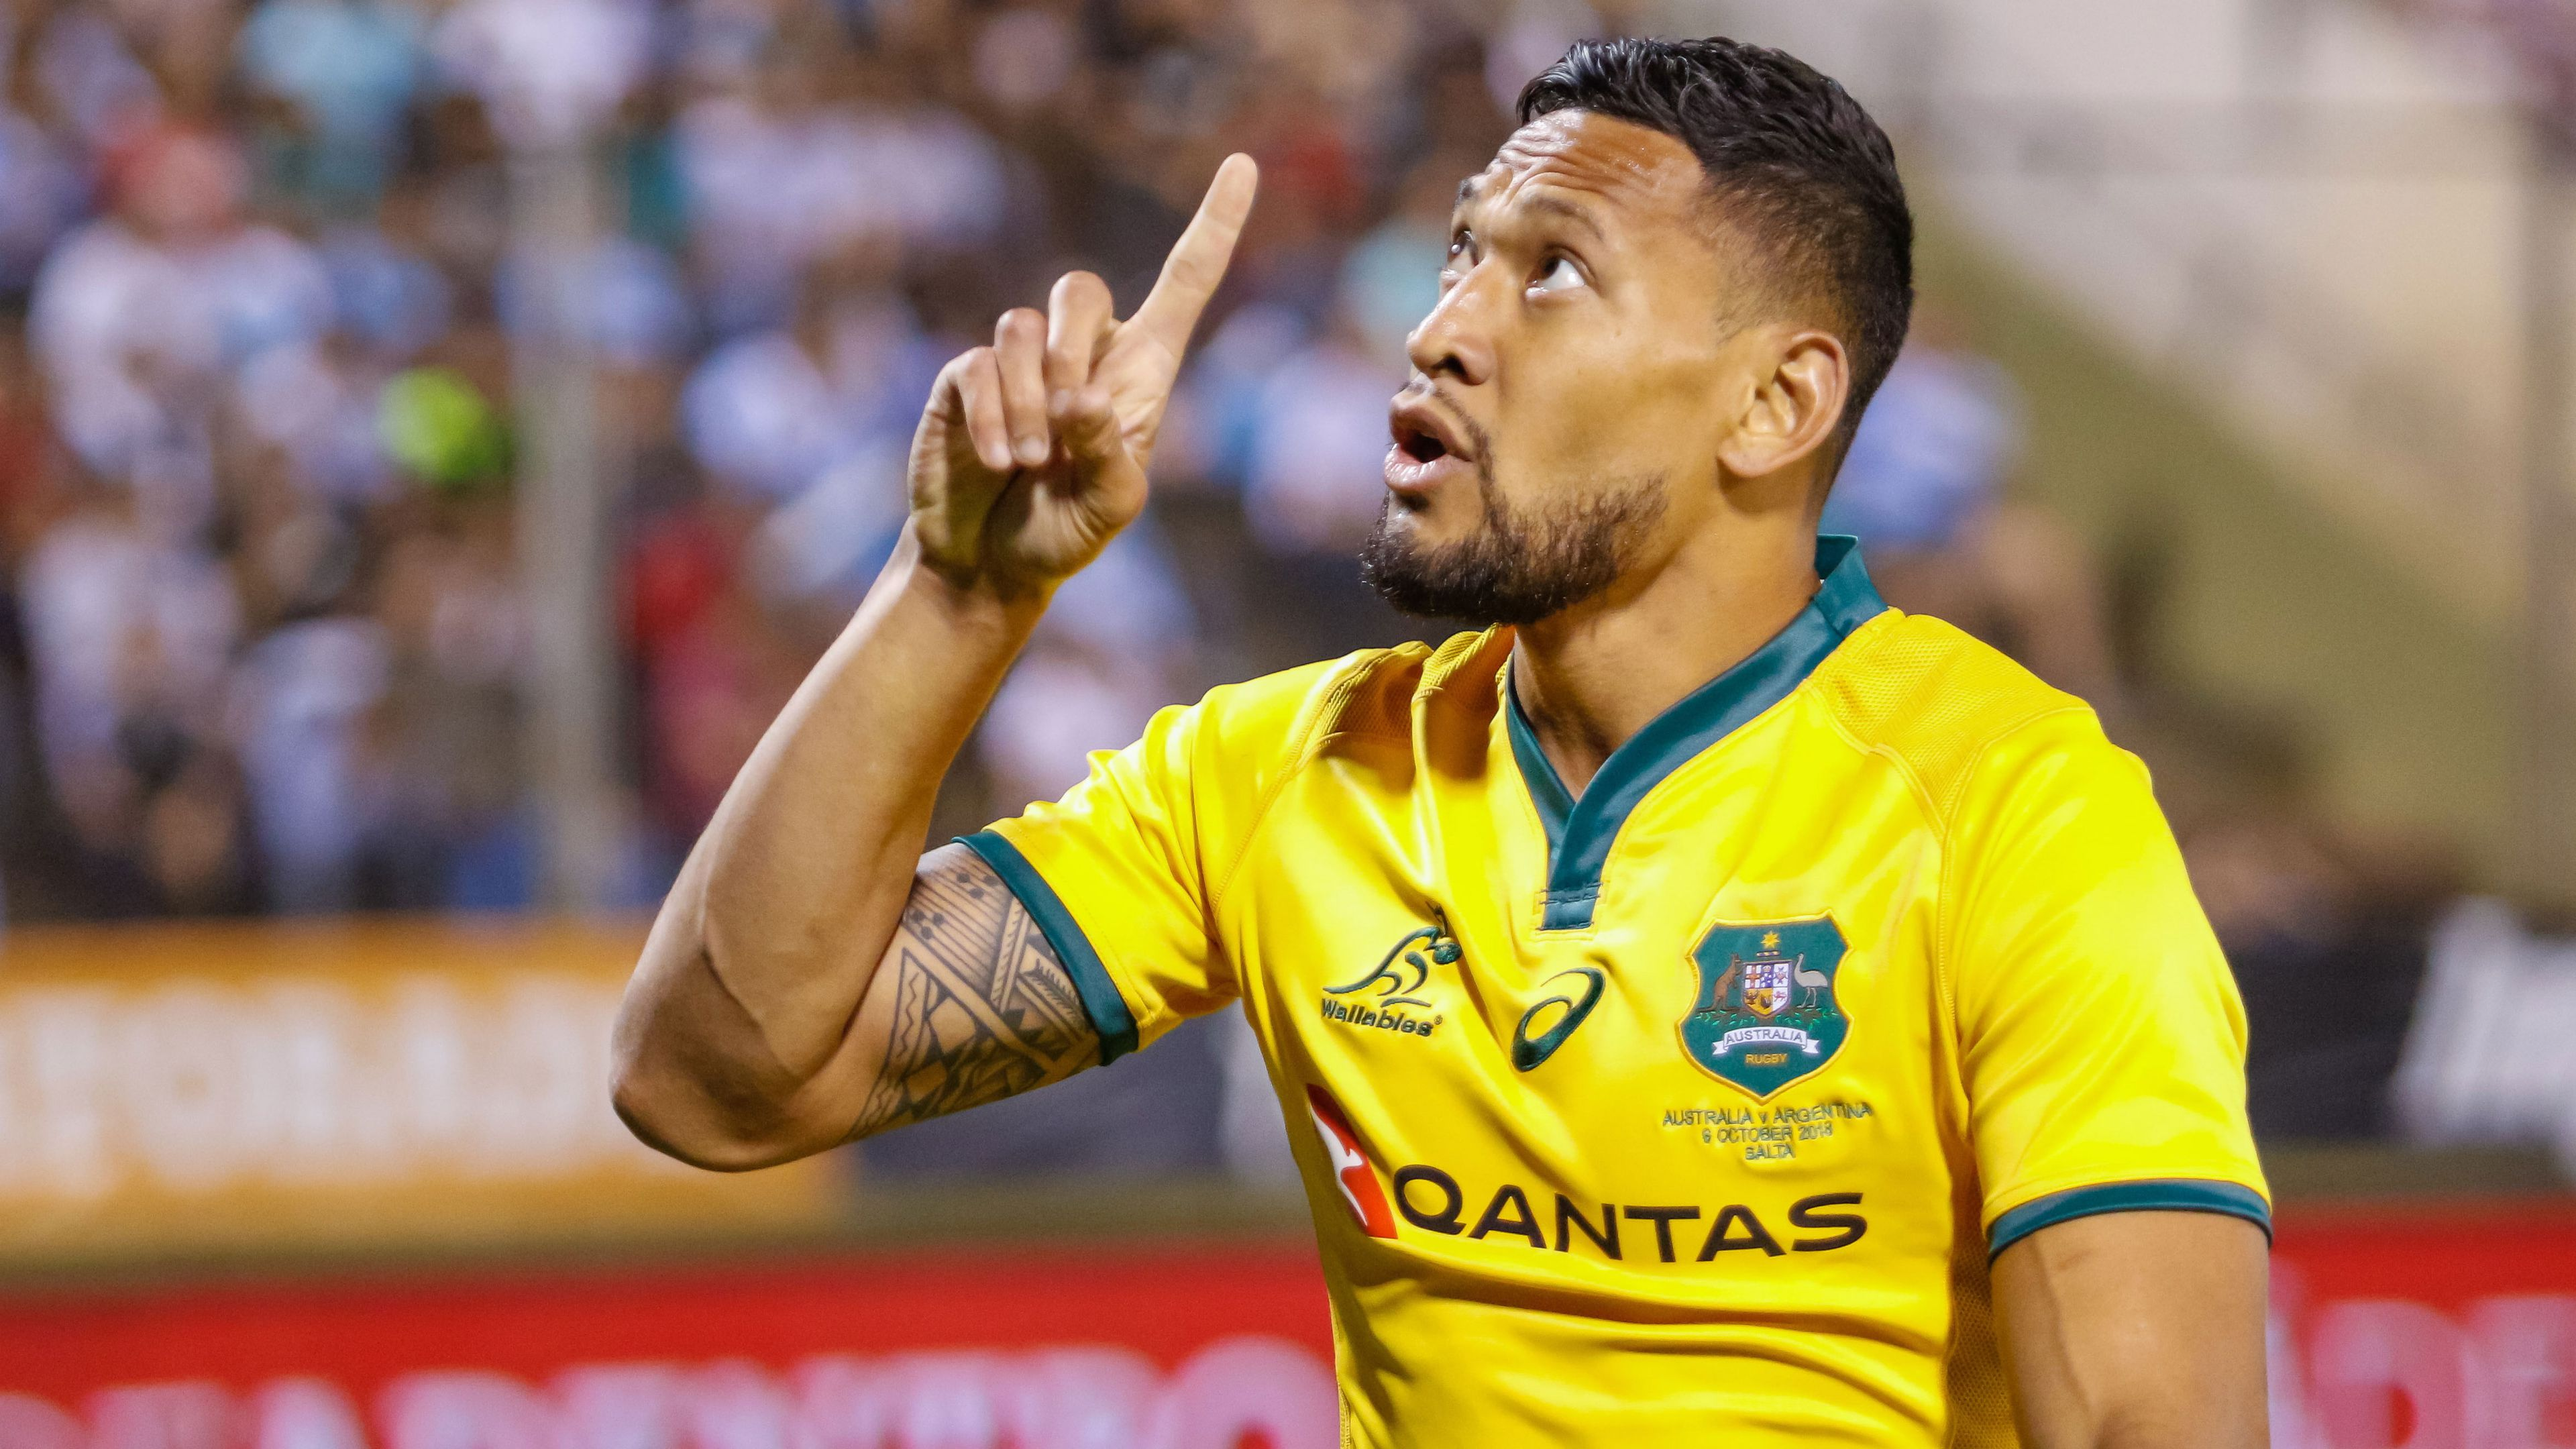 Folau says he has 'a lot of rugby left' despite sacking